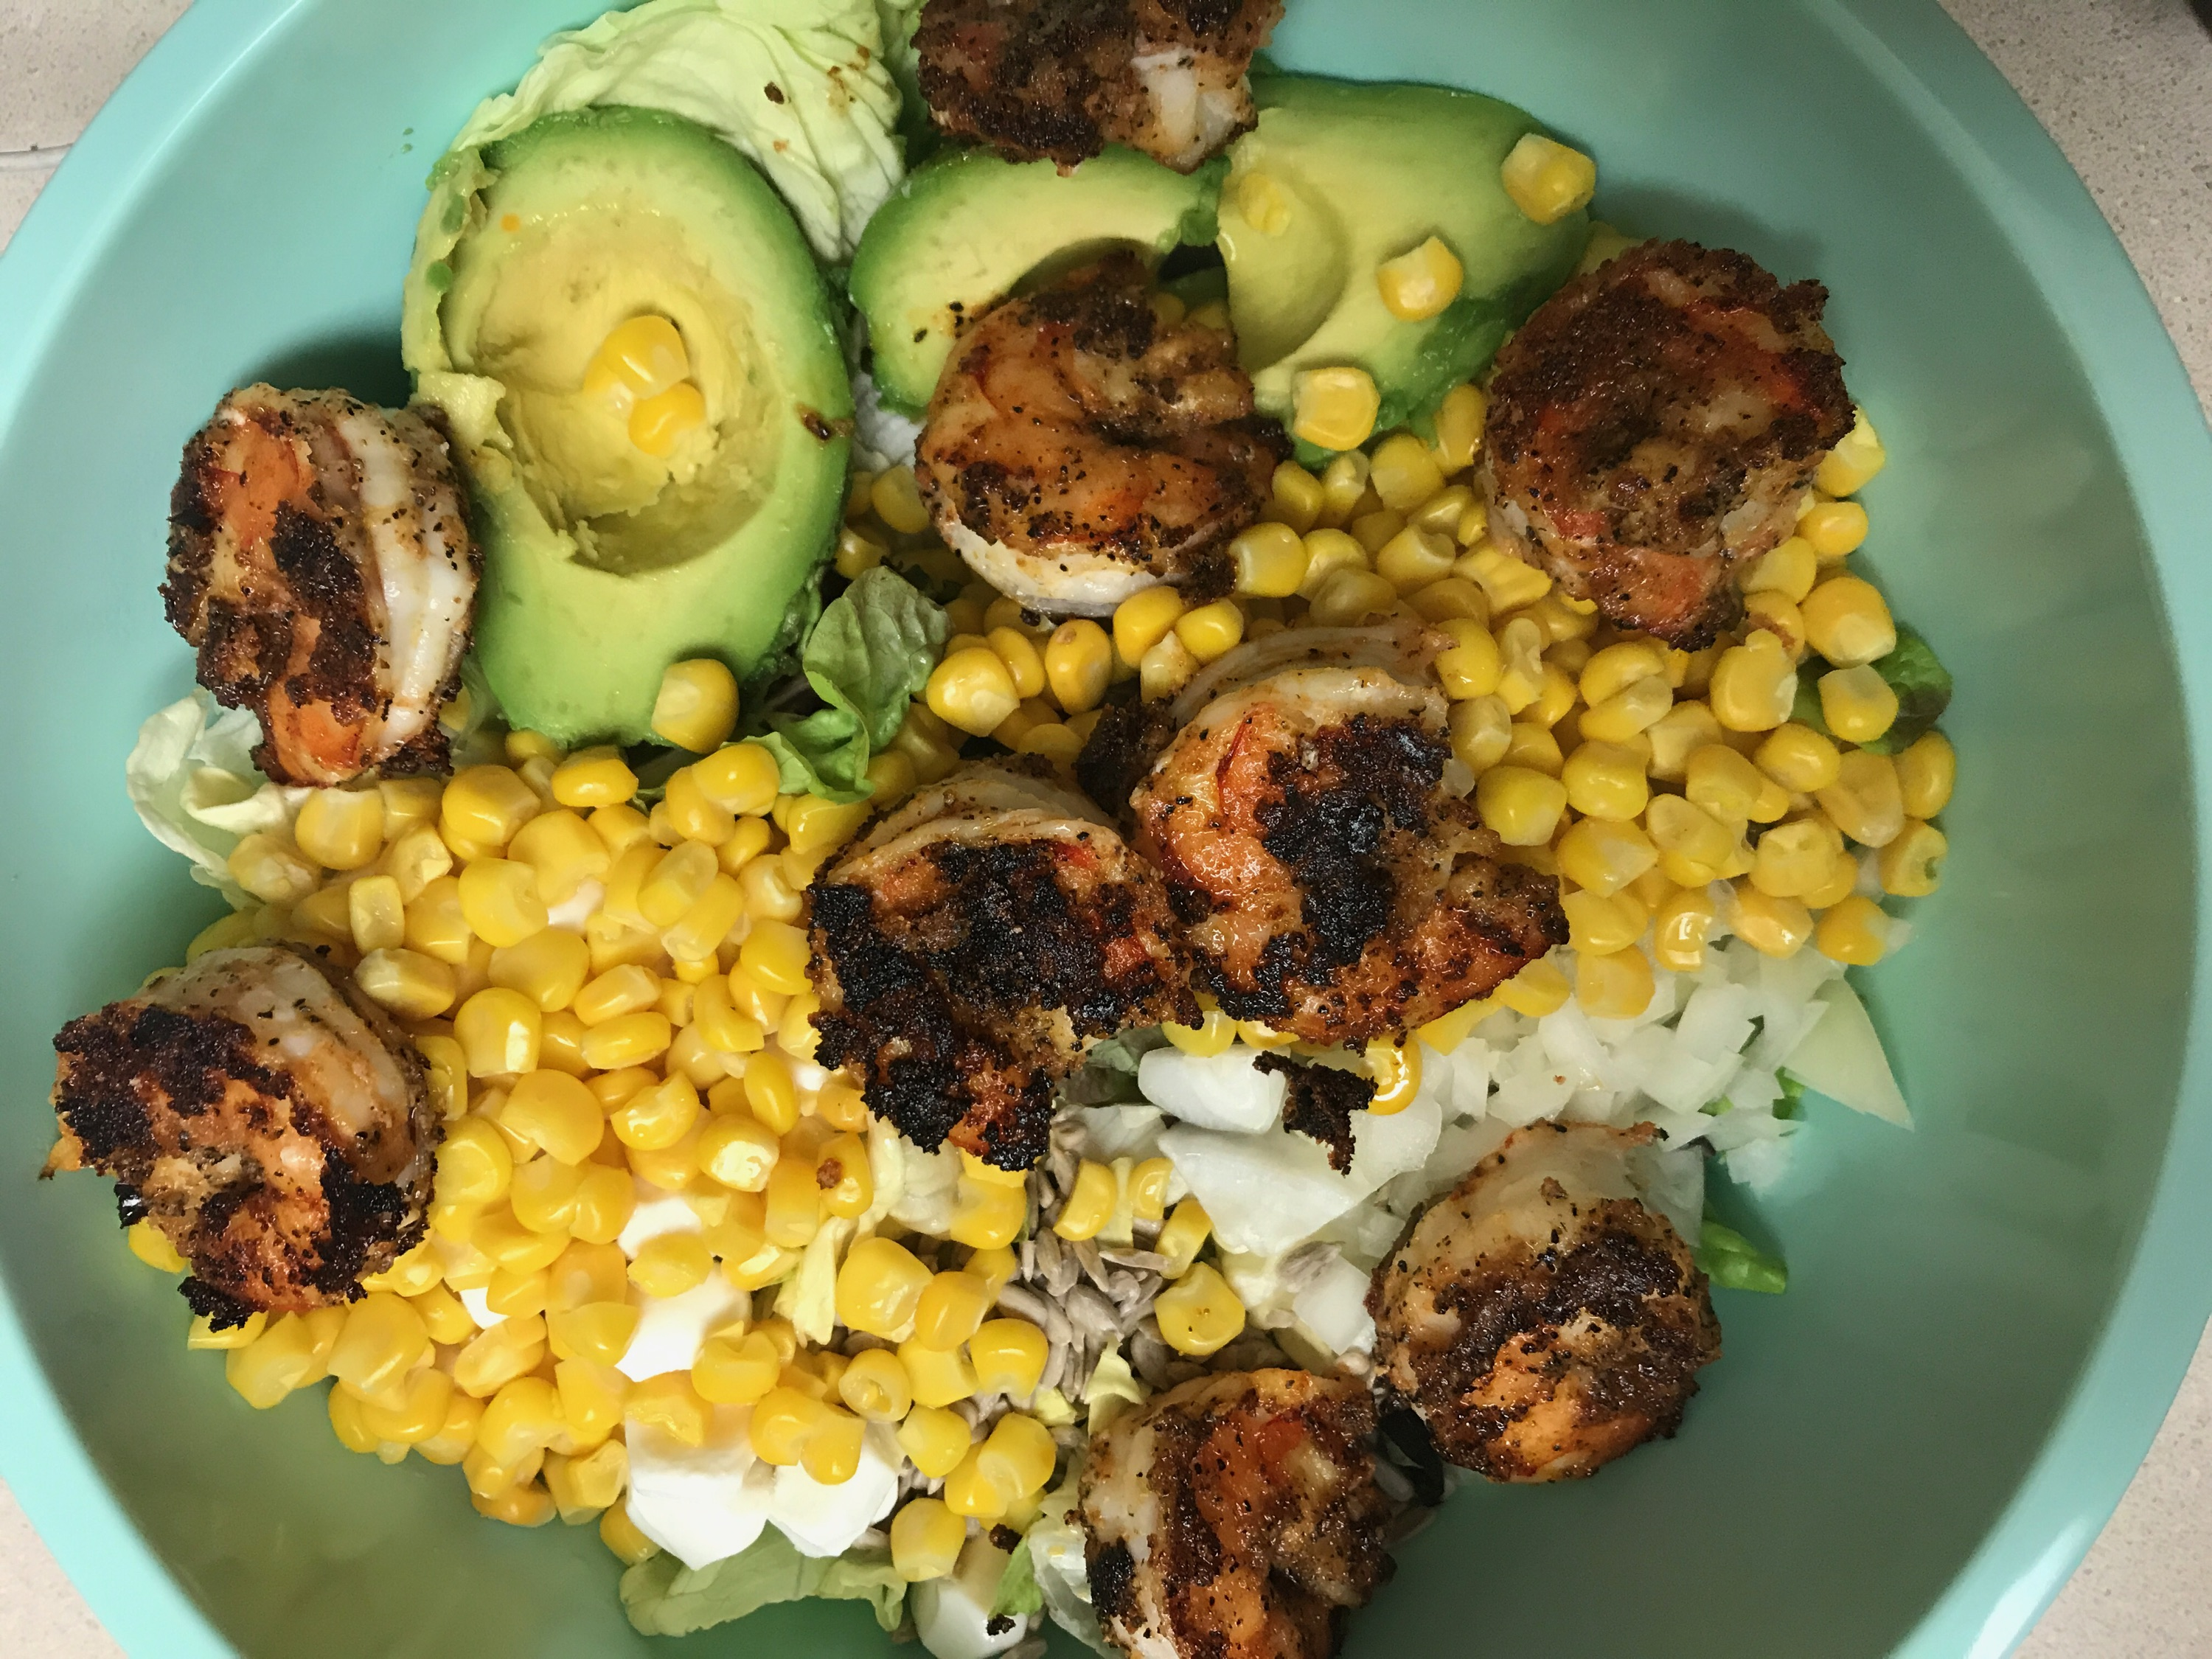 Blackened Shrimp Salad - Meal Planning + What We Ate Last Week - Communikait by Kait Hanson